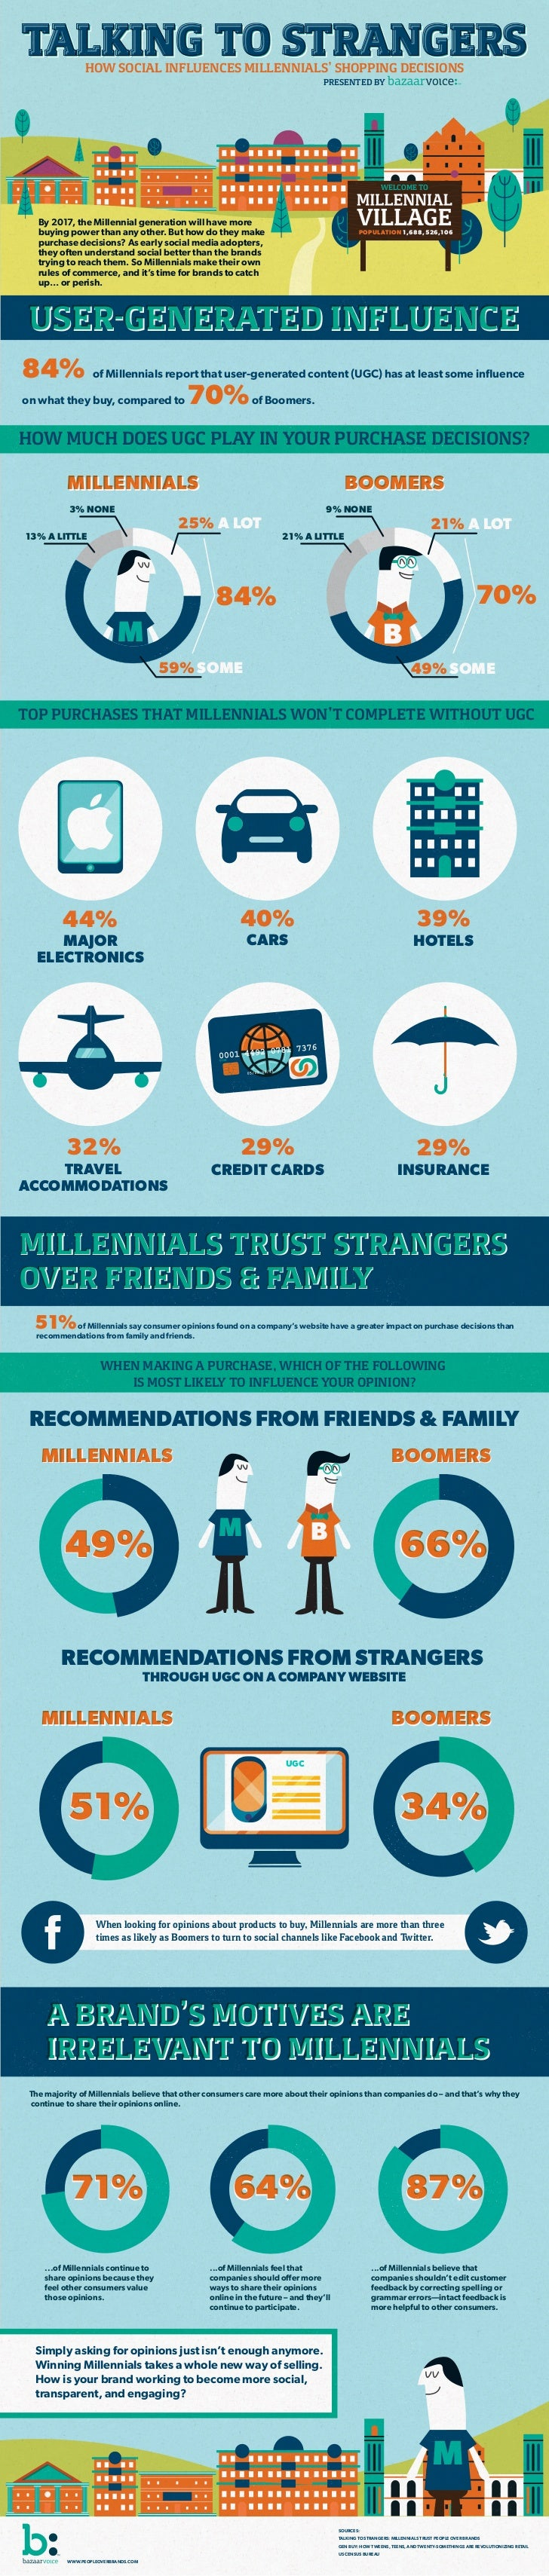 TALKING TO STRANGERS                HOW SOCIAL INFLUENCES MILLENNIALS' SHOPPING DECISIONS                                 ...